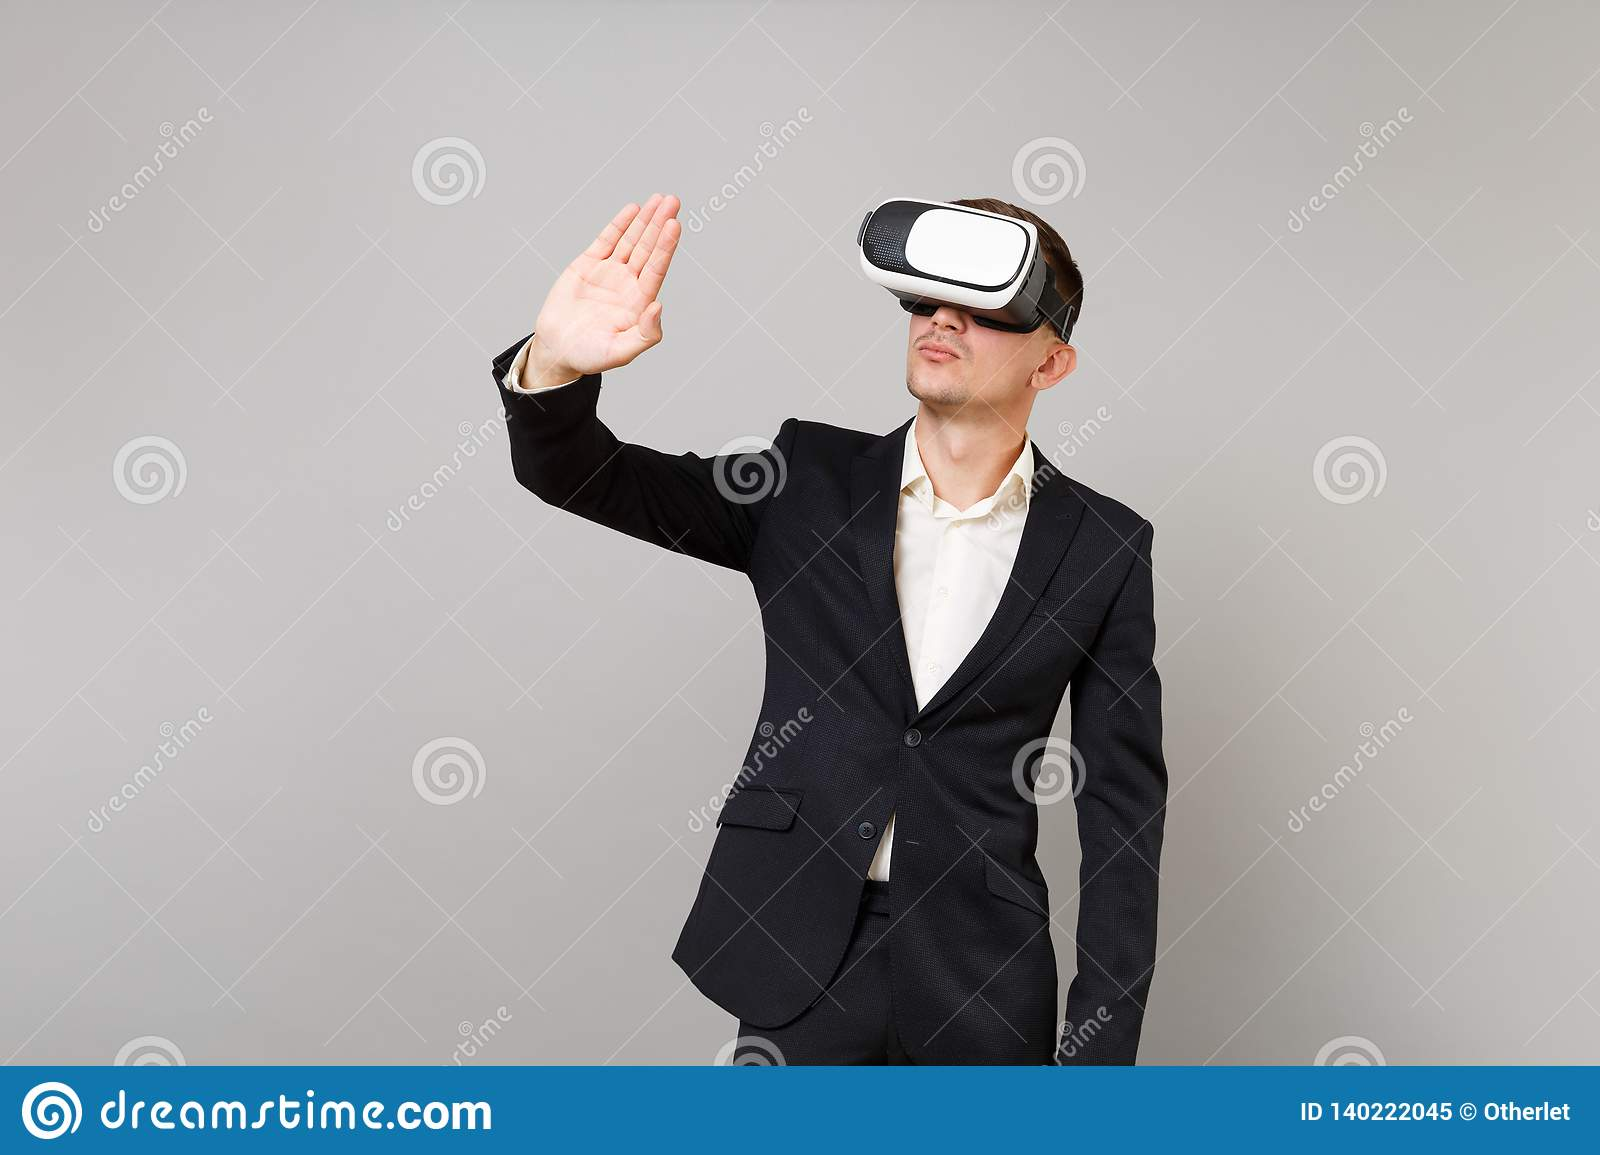 Young business man in suit looking in headset touch something like push click on button and pointing at floating virtual